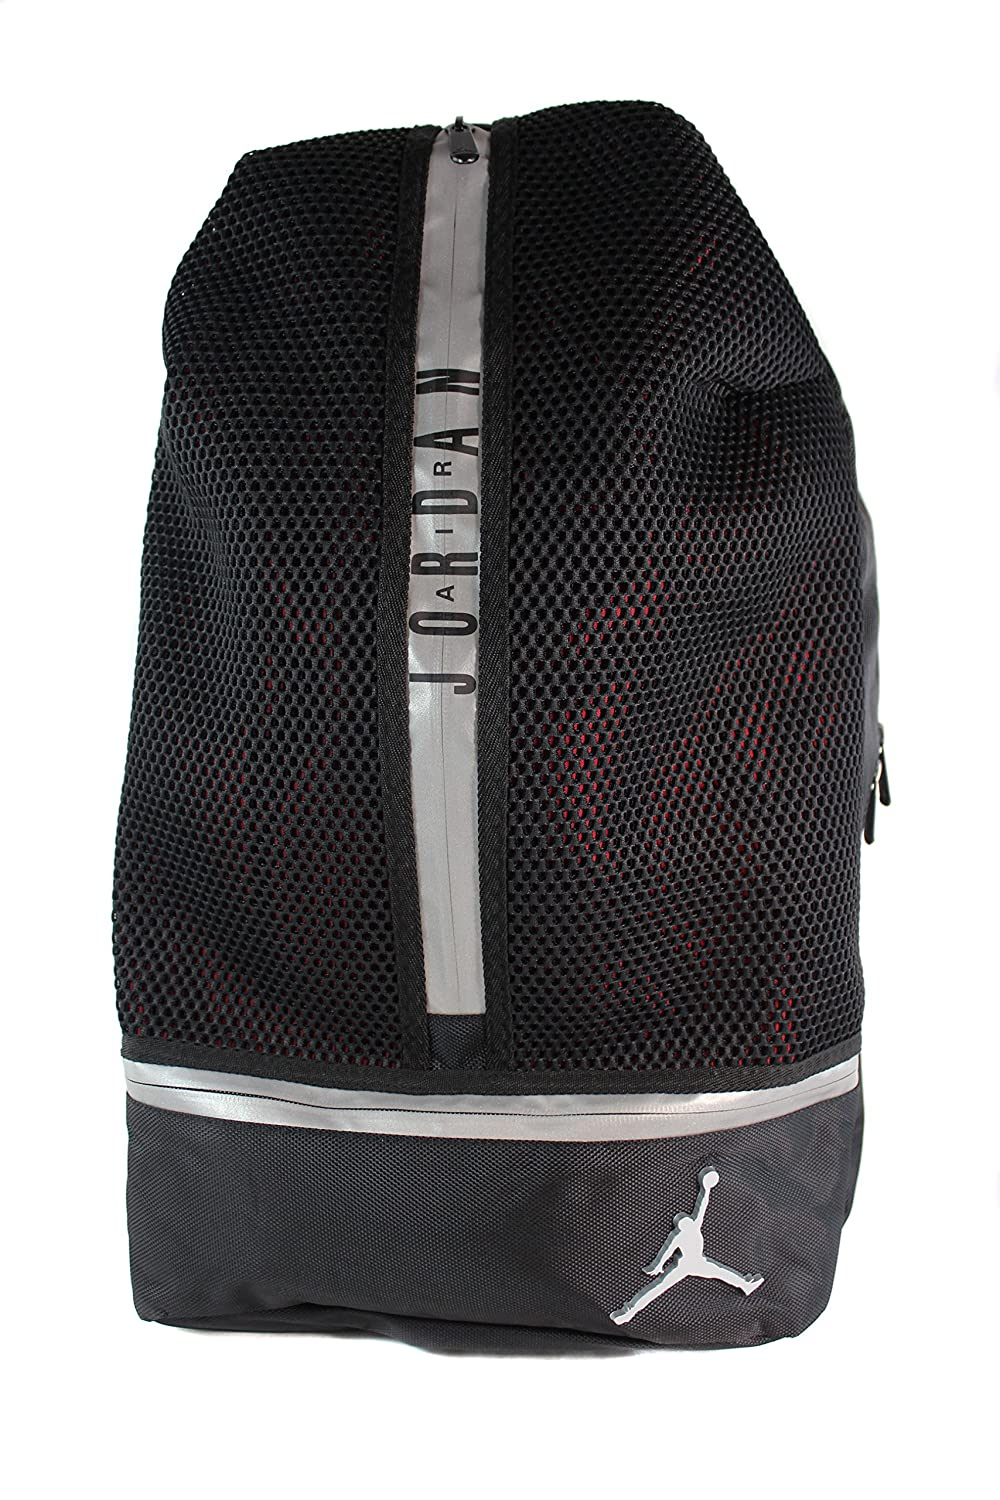 d983b19588f085 outlet Jordan All Net Laptop Backpack (Black Silver) - b-u-t.co.za